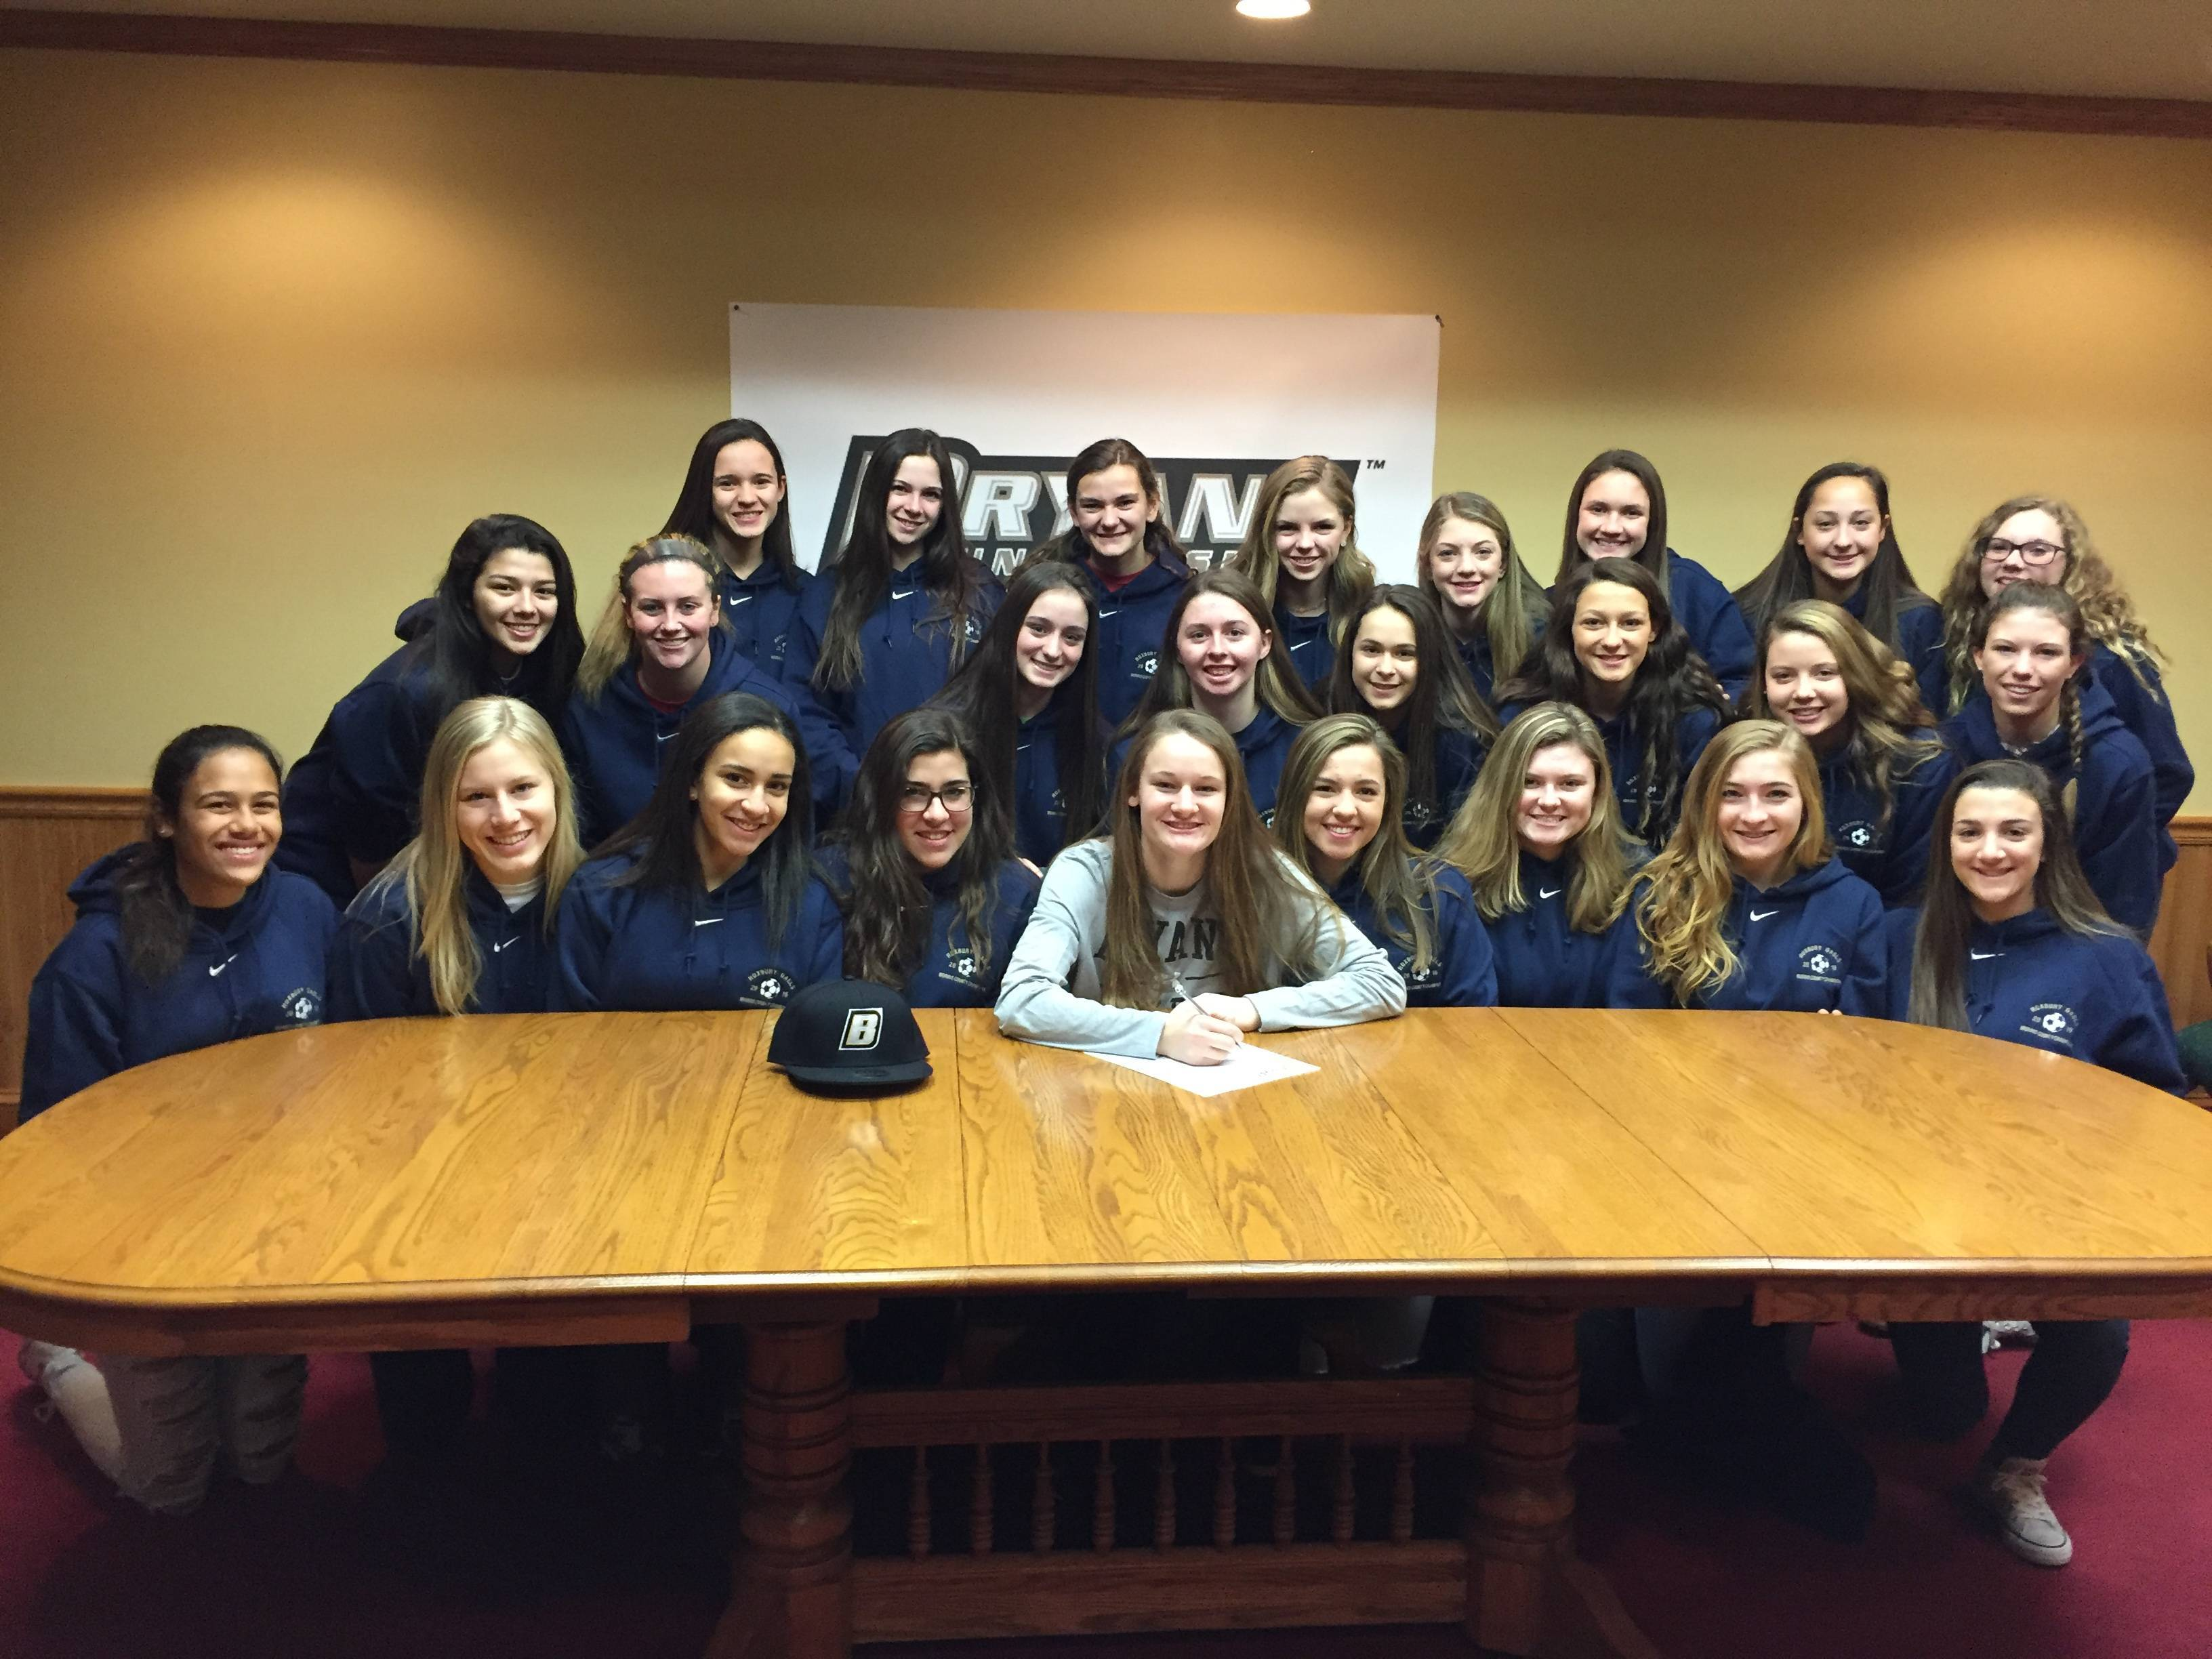 c88a476fe59a8352ea77_Irwin_Signs_Intent_with_Morris_Cty_Champs.JPG